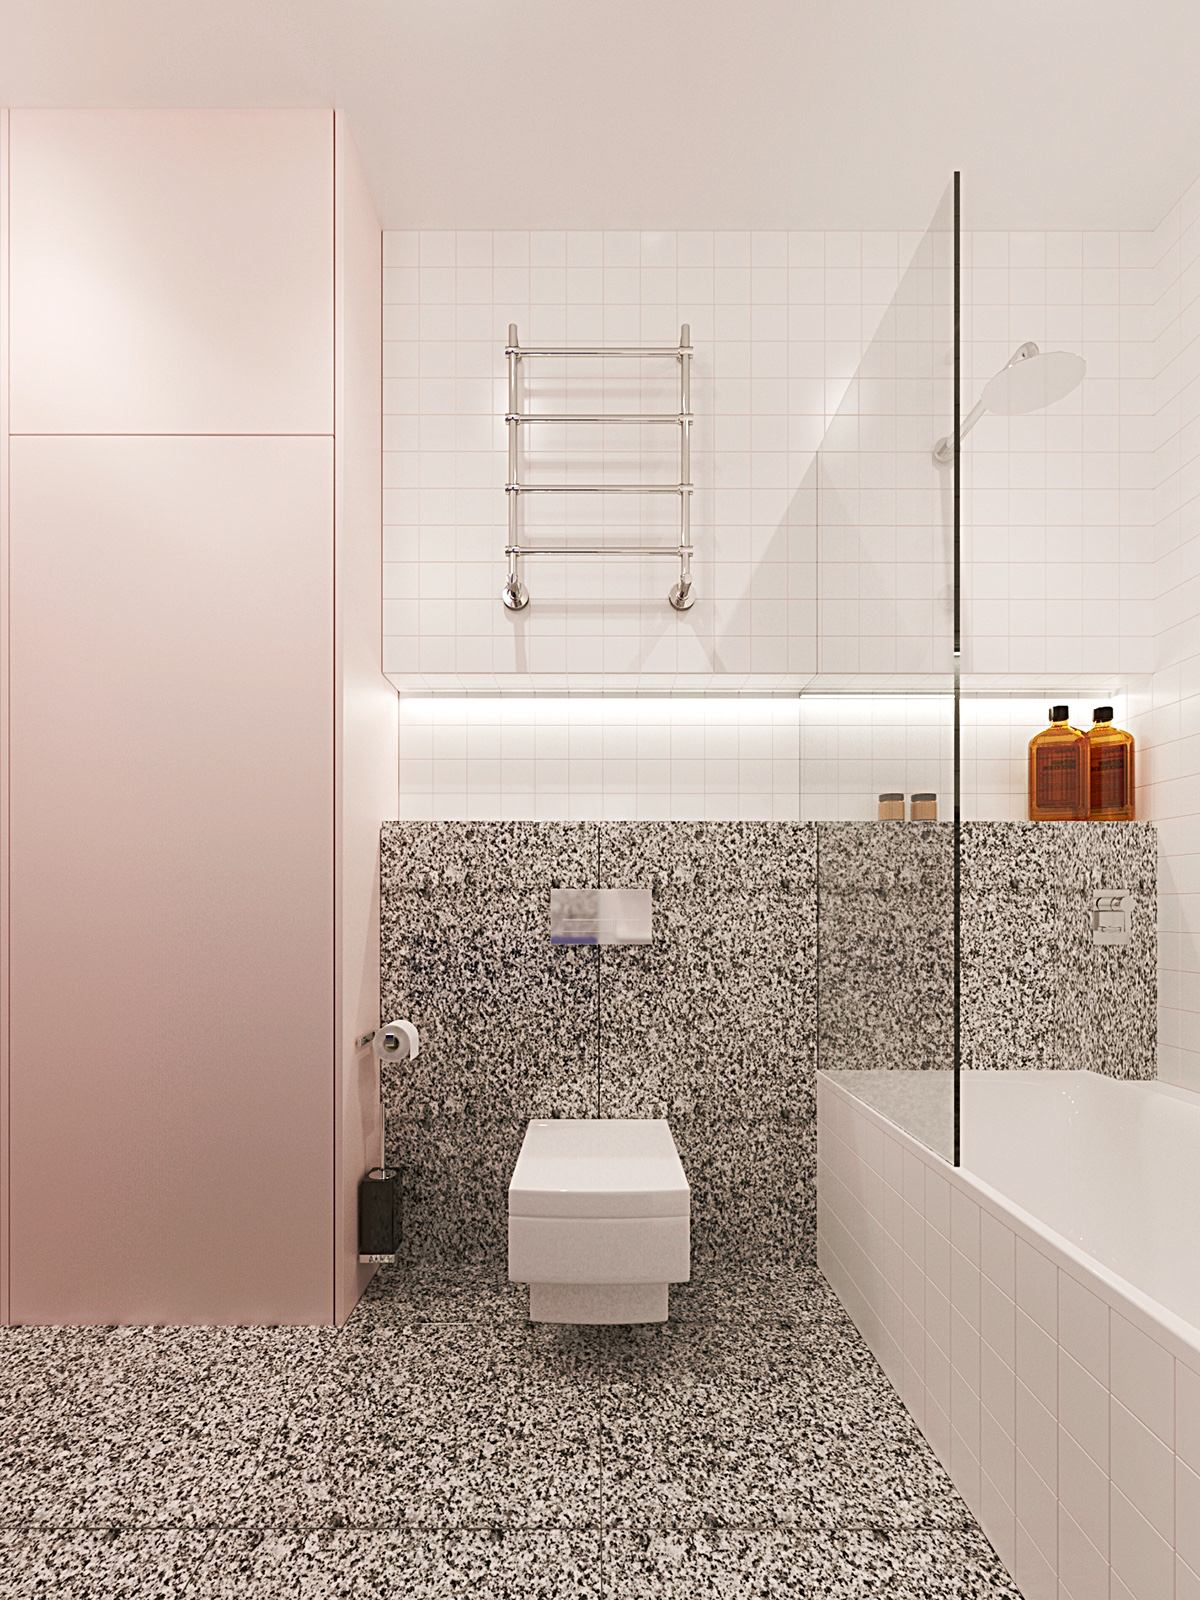 T and h kitchen and bathroom specialists kitchen and bath for Bathroom specialists